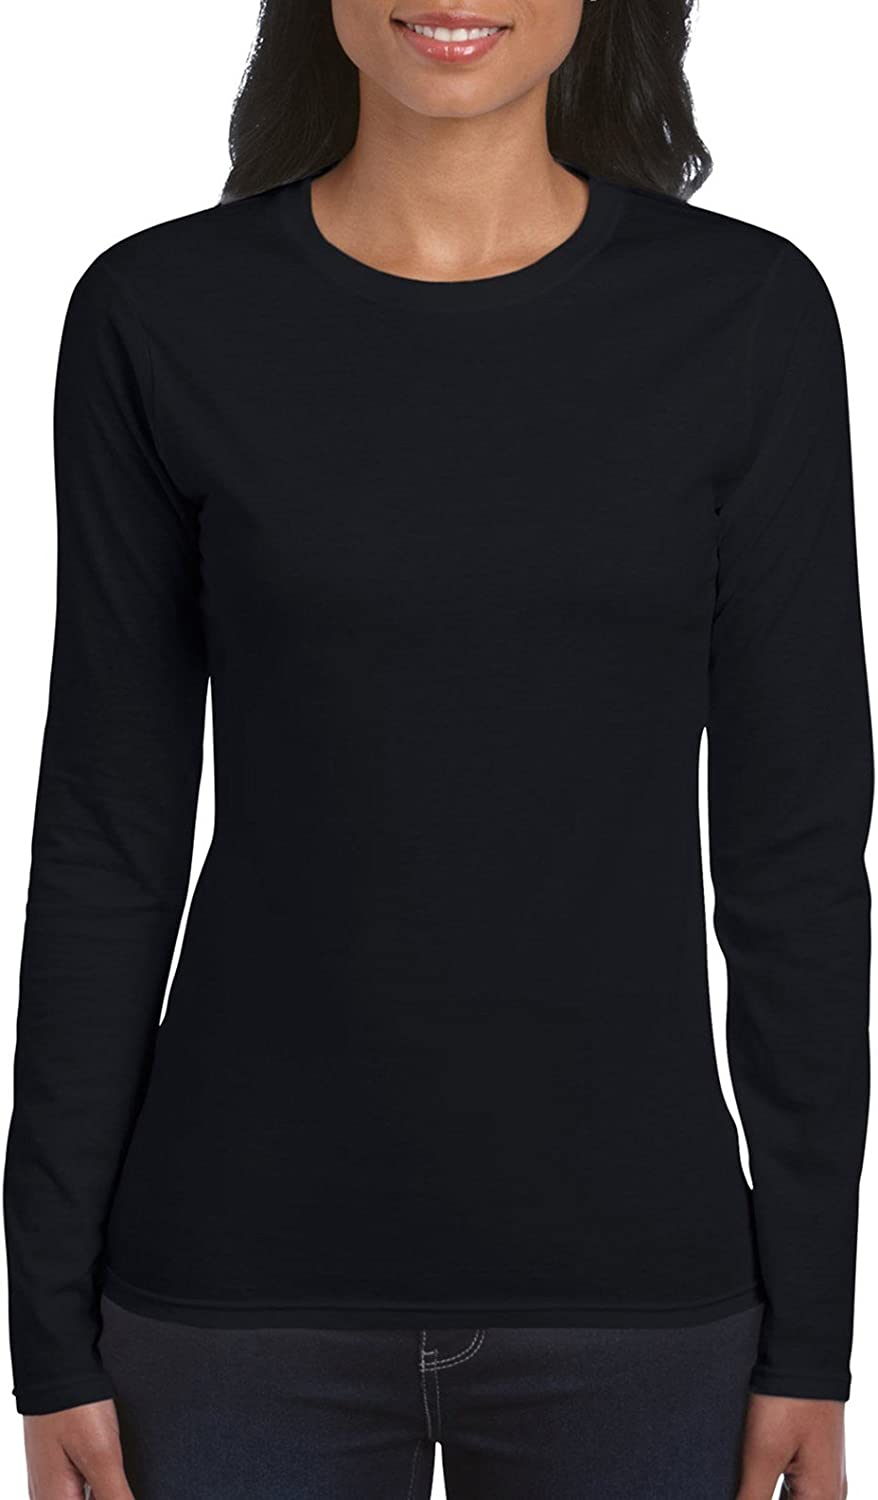 Gildan Womens Softstyle Long Sleeve T-Shirt, 2-Pack, Black, 2X-Large: Amazon.es: Ropa y accesorios